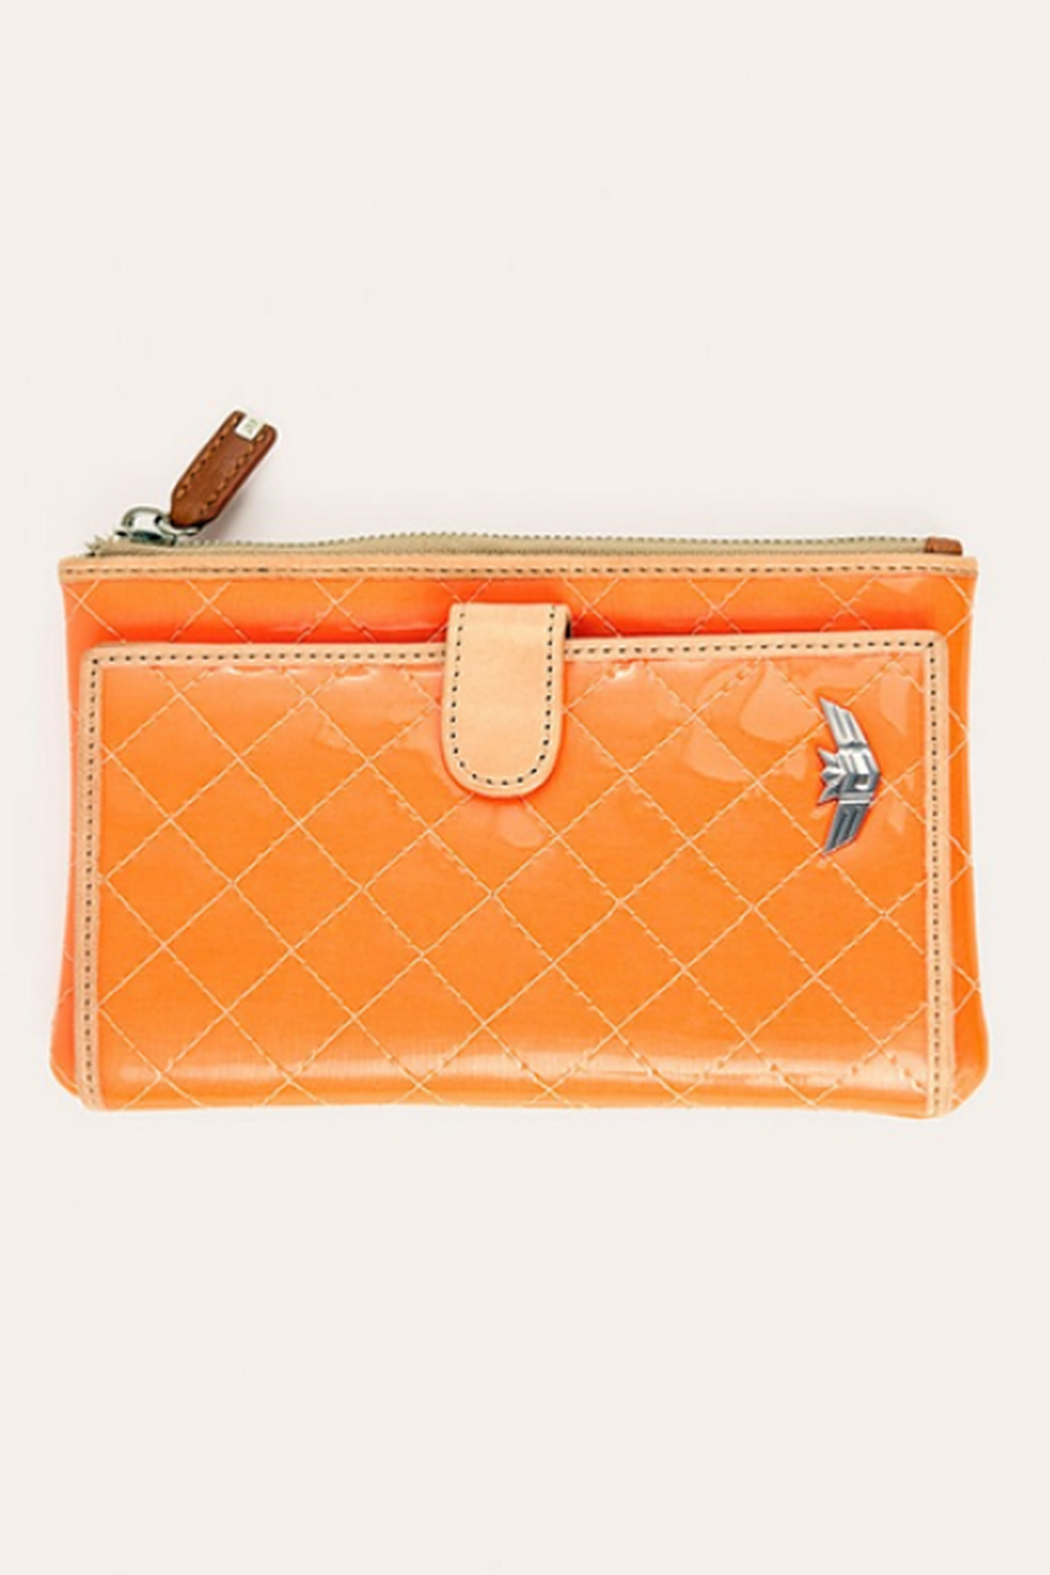 The Birds Nest SLIM WALLET-CANDY TANGERINE - Front Cropped Image